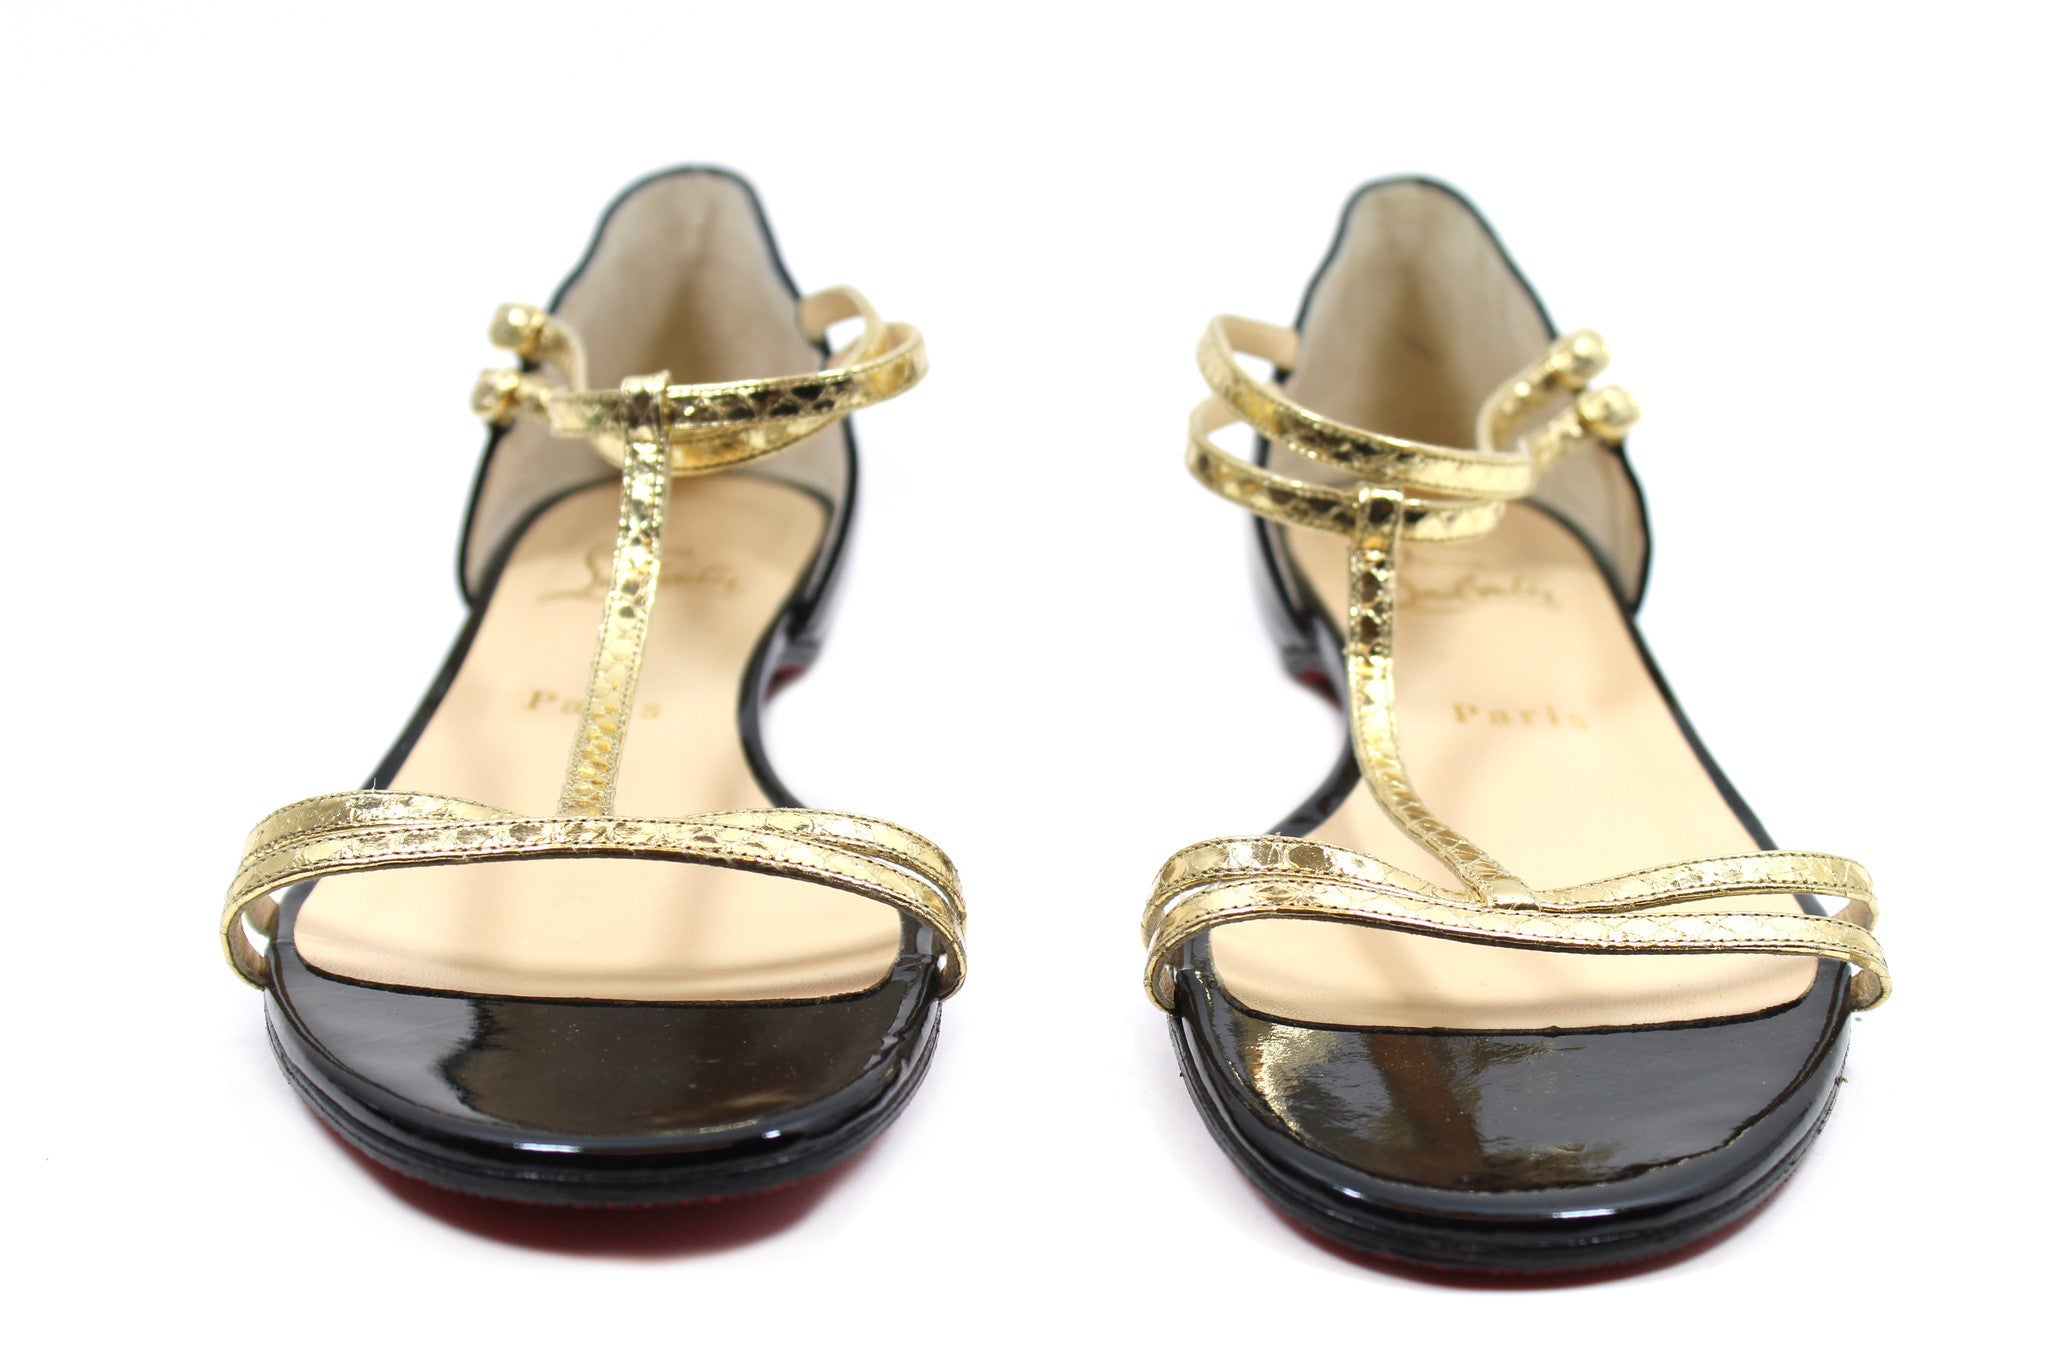 Christian Louboutin 'Arnold' Black Patent Leather & Gold Water Snake Sandals (Size 39.5)